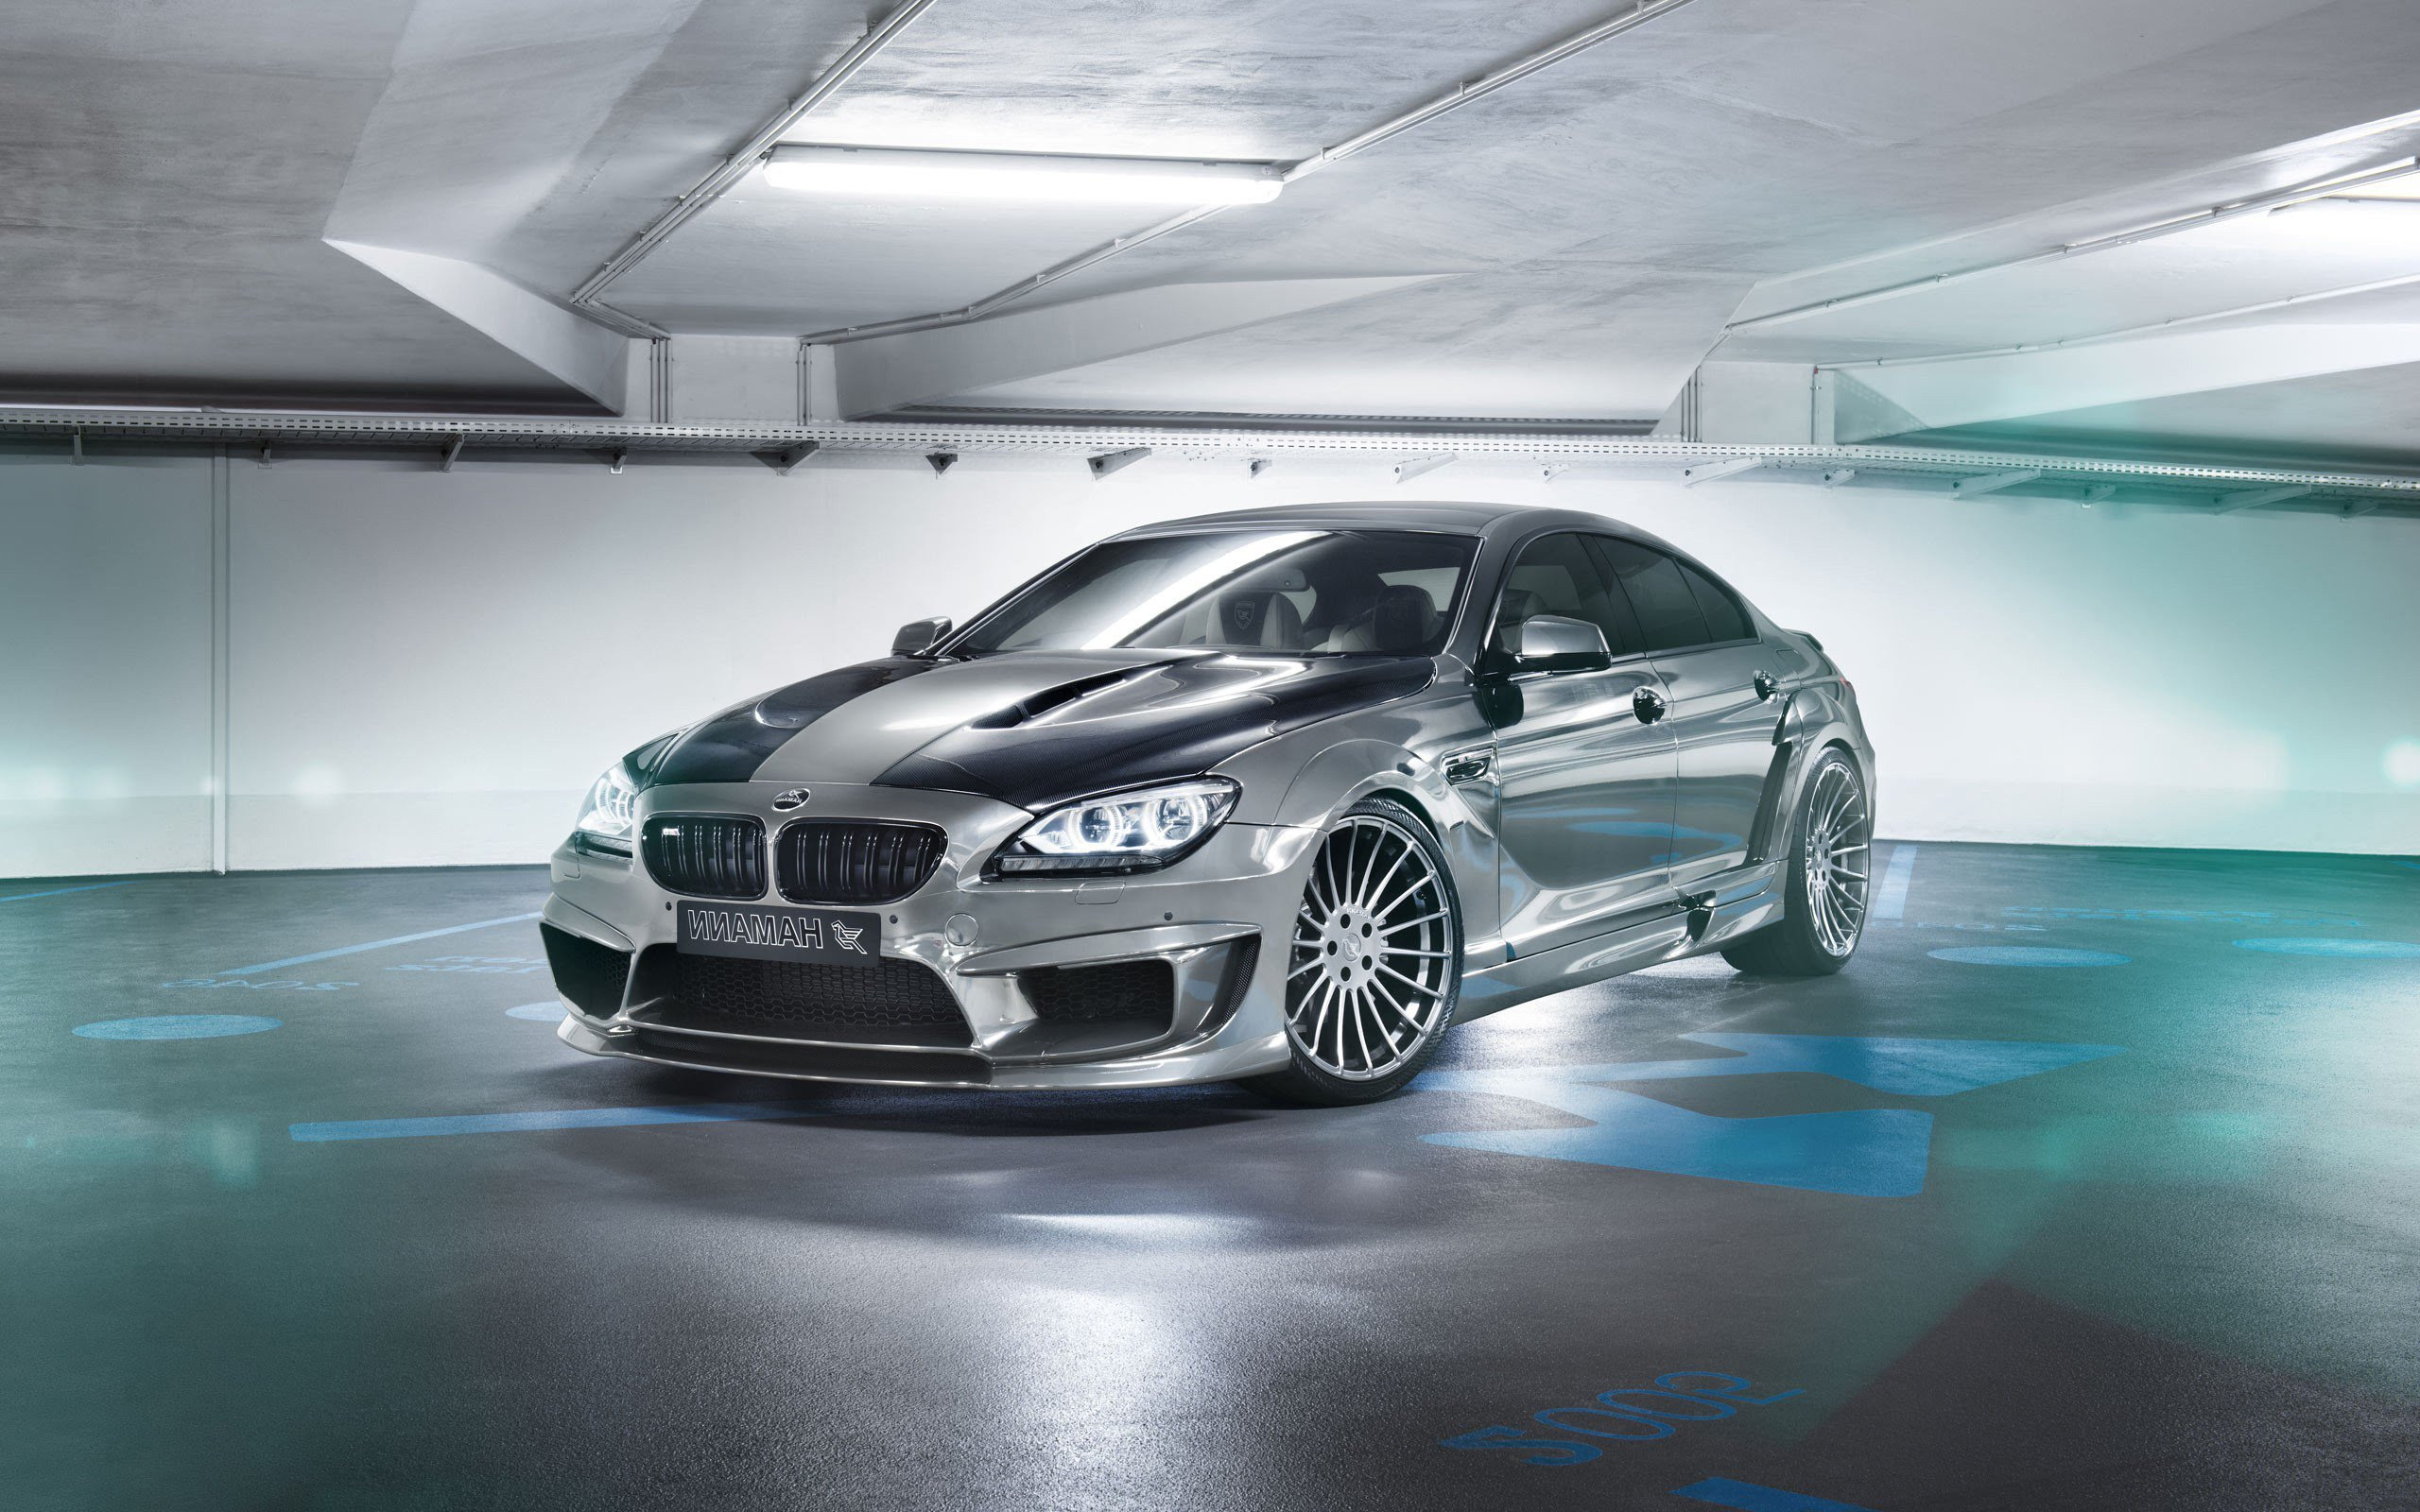 Bmw M6 Gran Coupe, HD Cars, 4k Wallpapers, Images ...